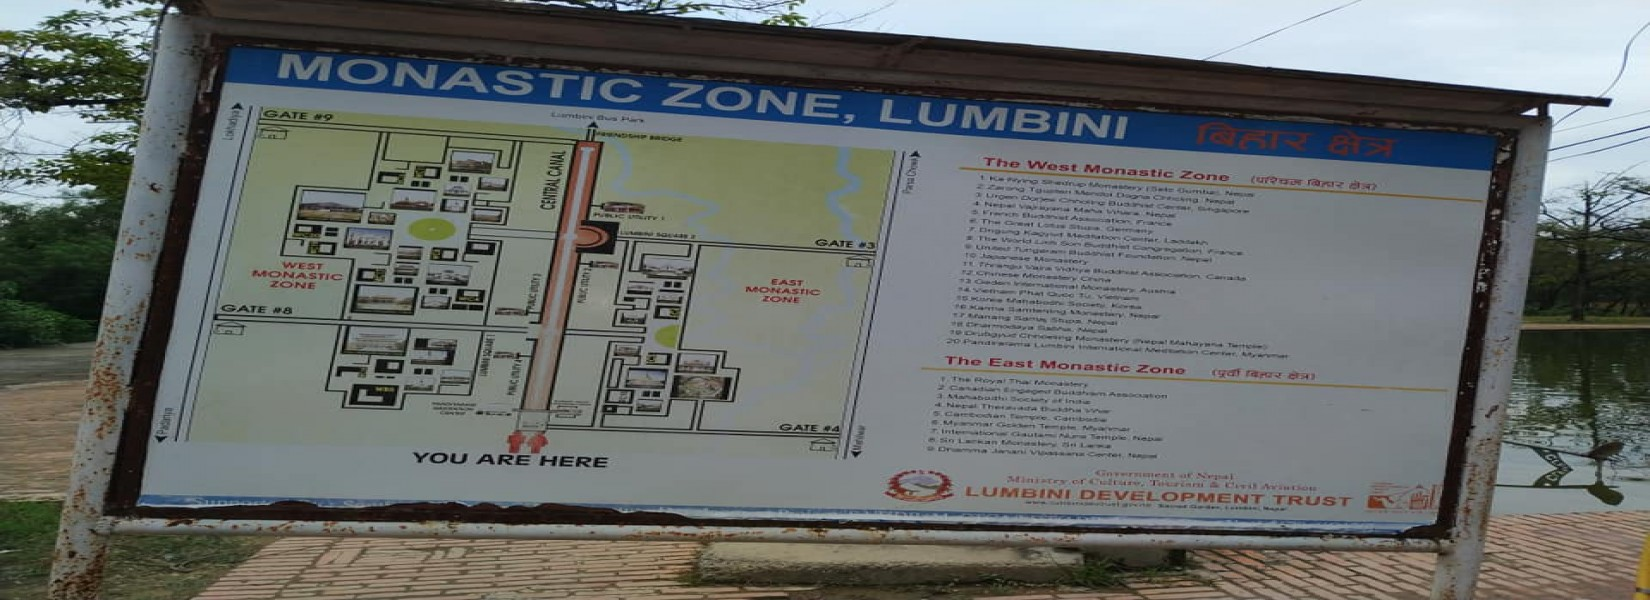 Monastic Zone in Lumbini : Different Monasteries in a Place